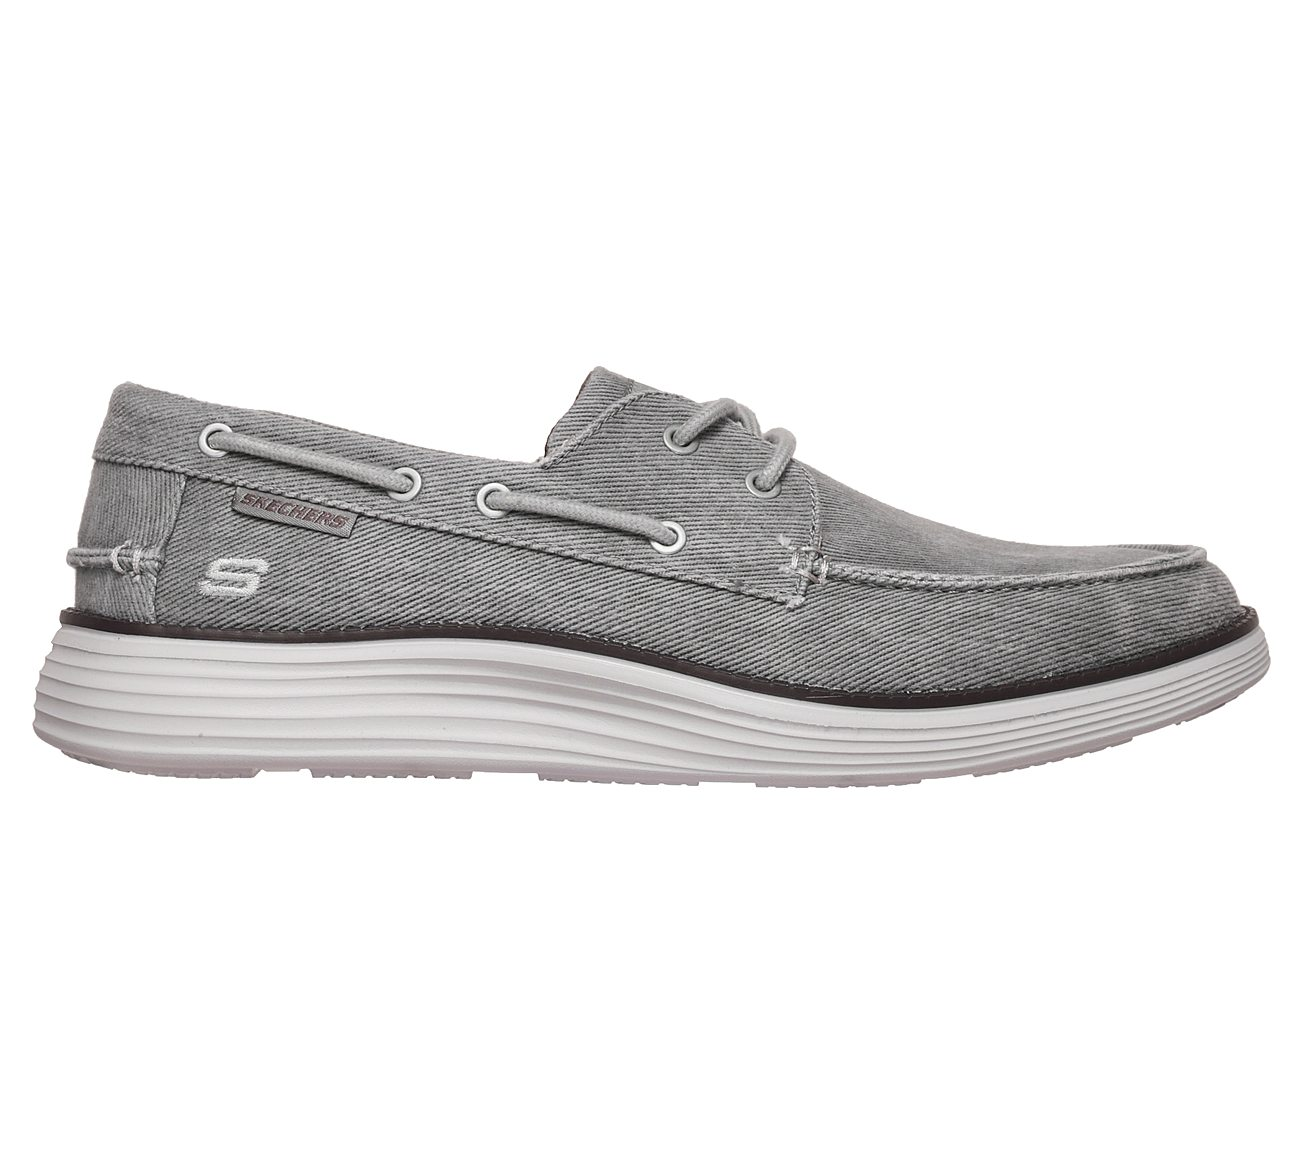 55f7245c Buy SKECHERS Status 2.0 - Lorano Comfort Shoes Shoes only $82.00